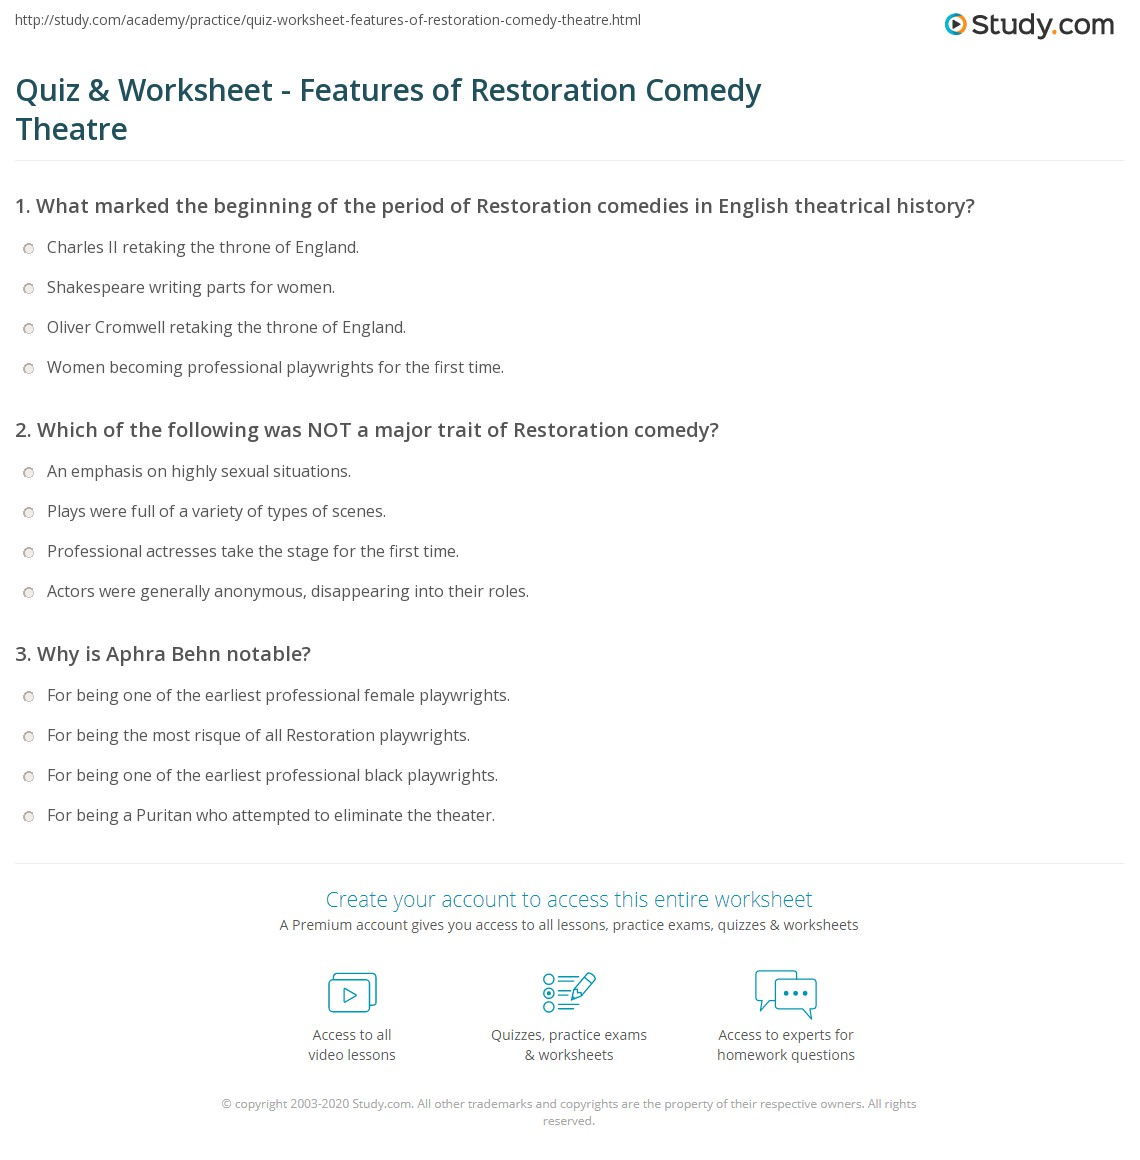 quiz worksheet features of restoration comedy theatre. Black Bedroom Furniture Sets. Home Design Ideas